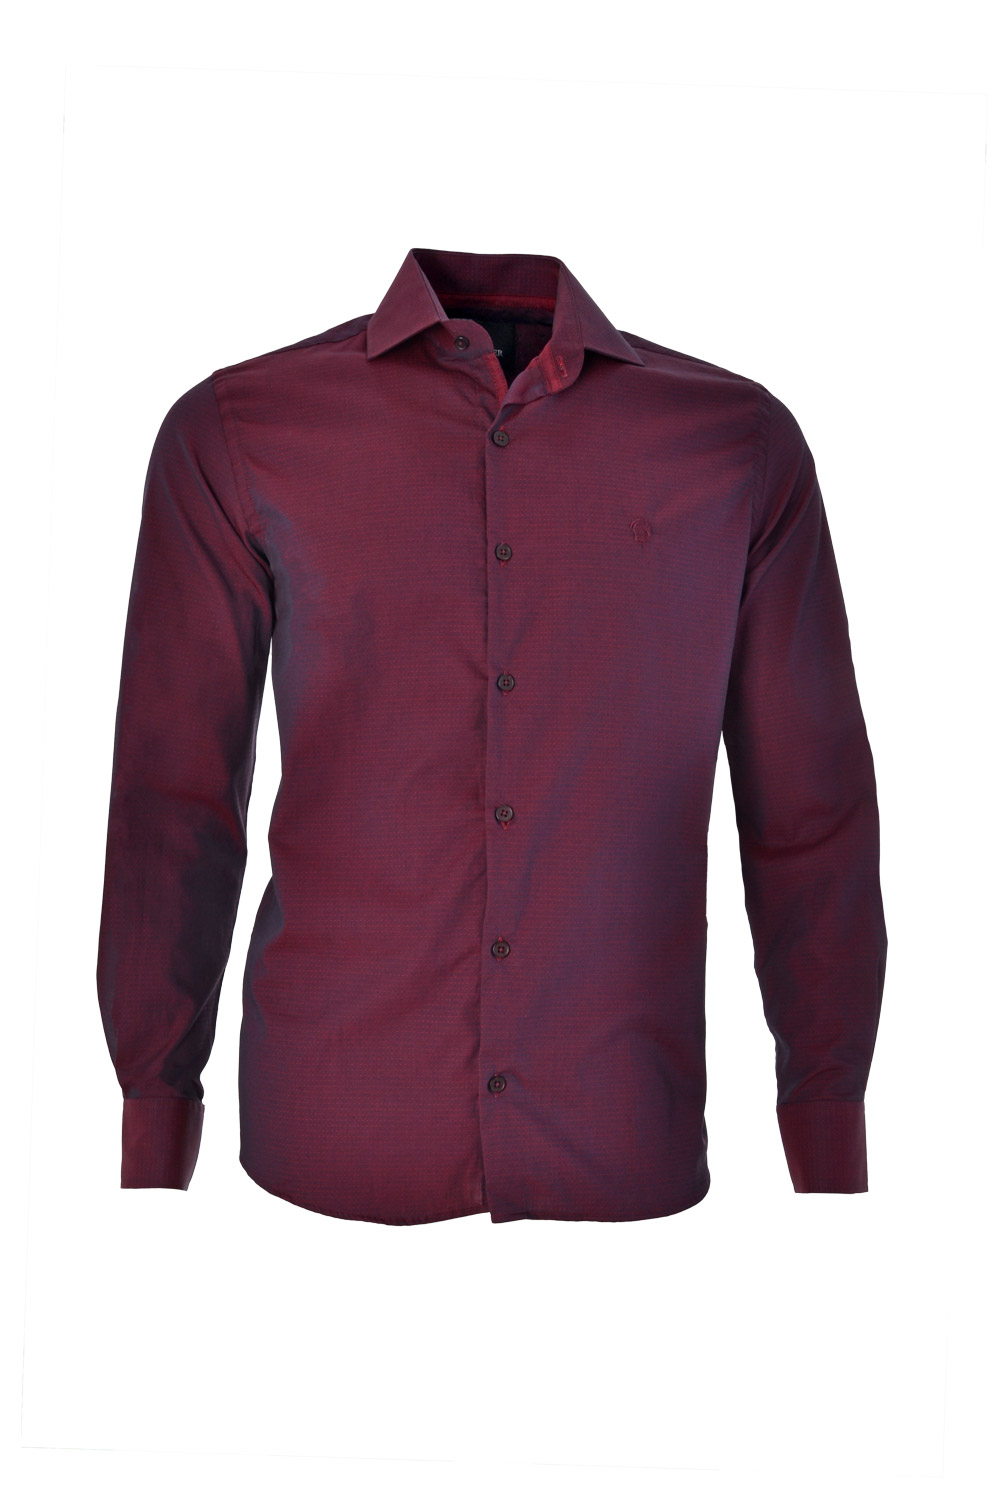 CAMISA ML FASHION SLIM ALGODAO FIO TINTO PETIT-POIS BORDO